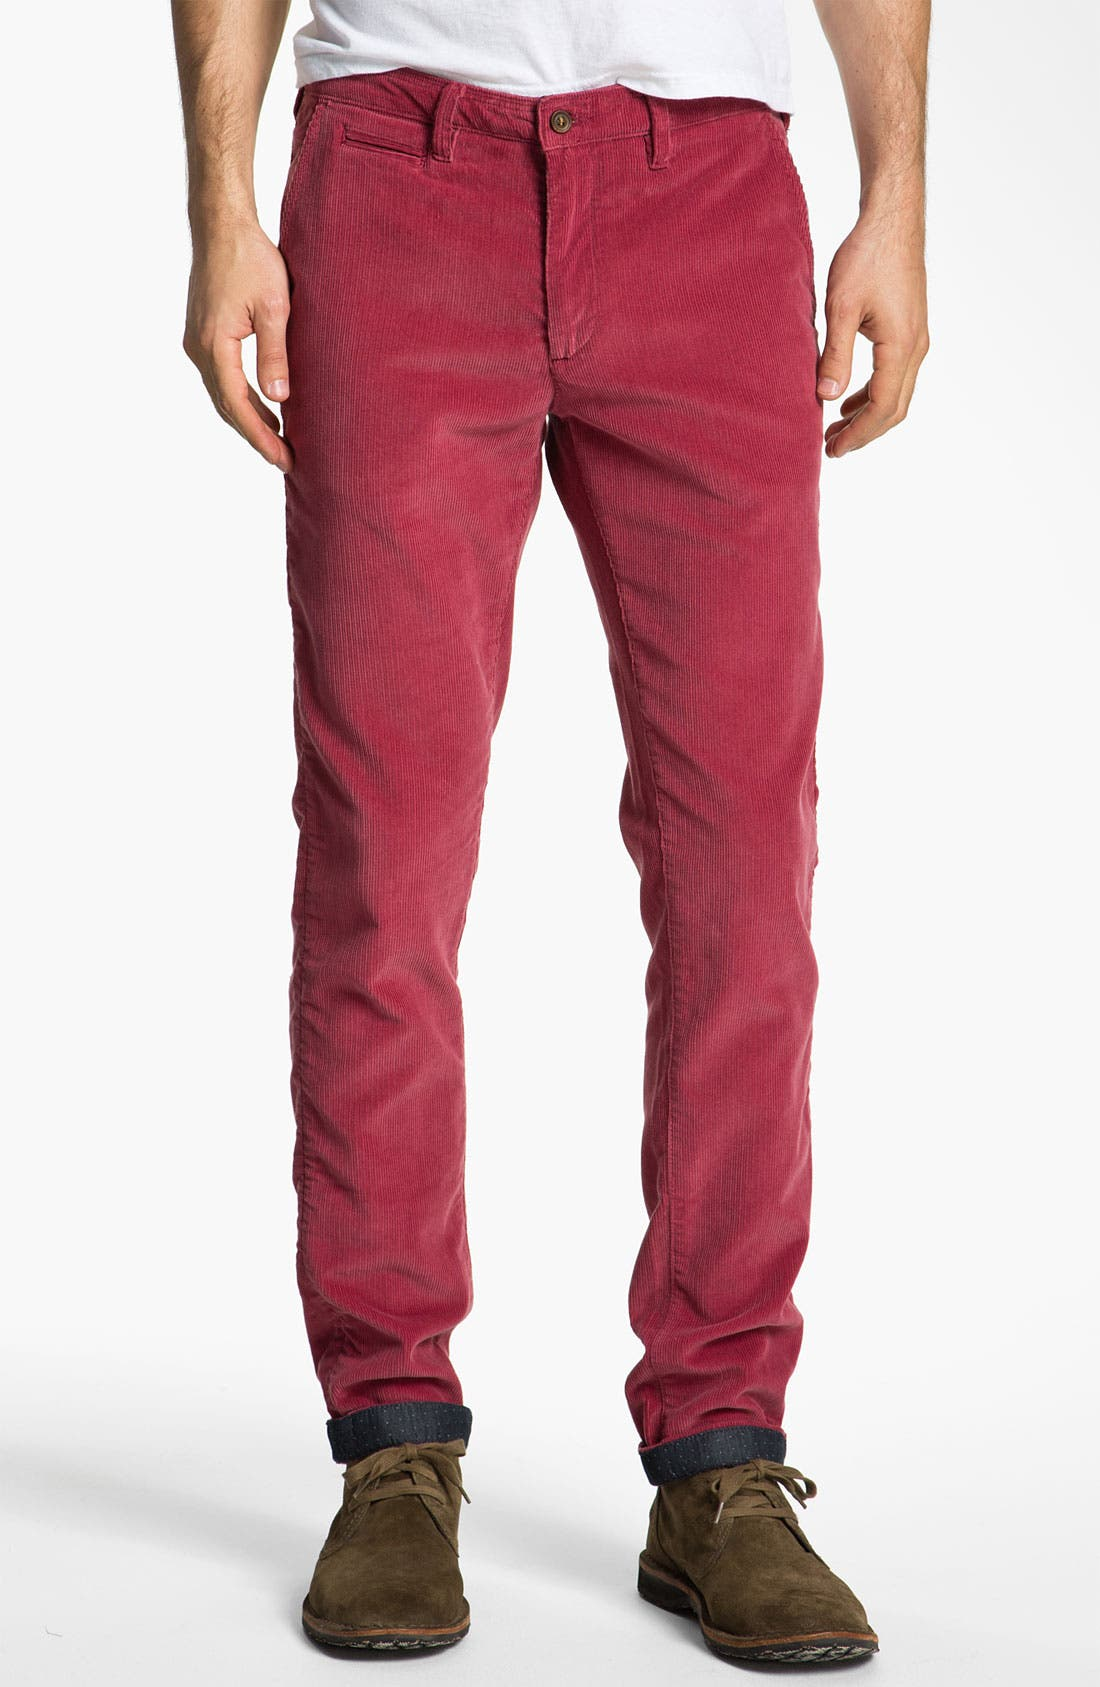 Alternate Image 1 Selected - Ted Baker London 'Pitatro' Slim Fit Corduroy Pants